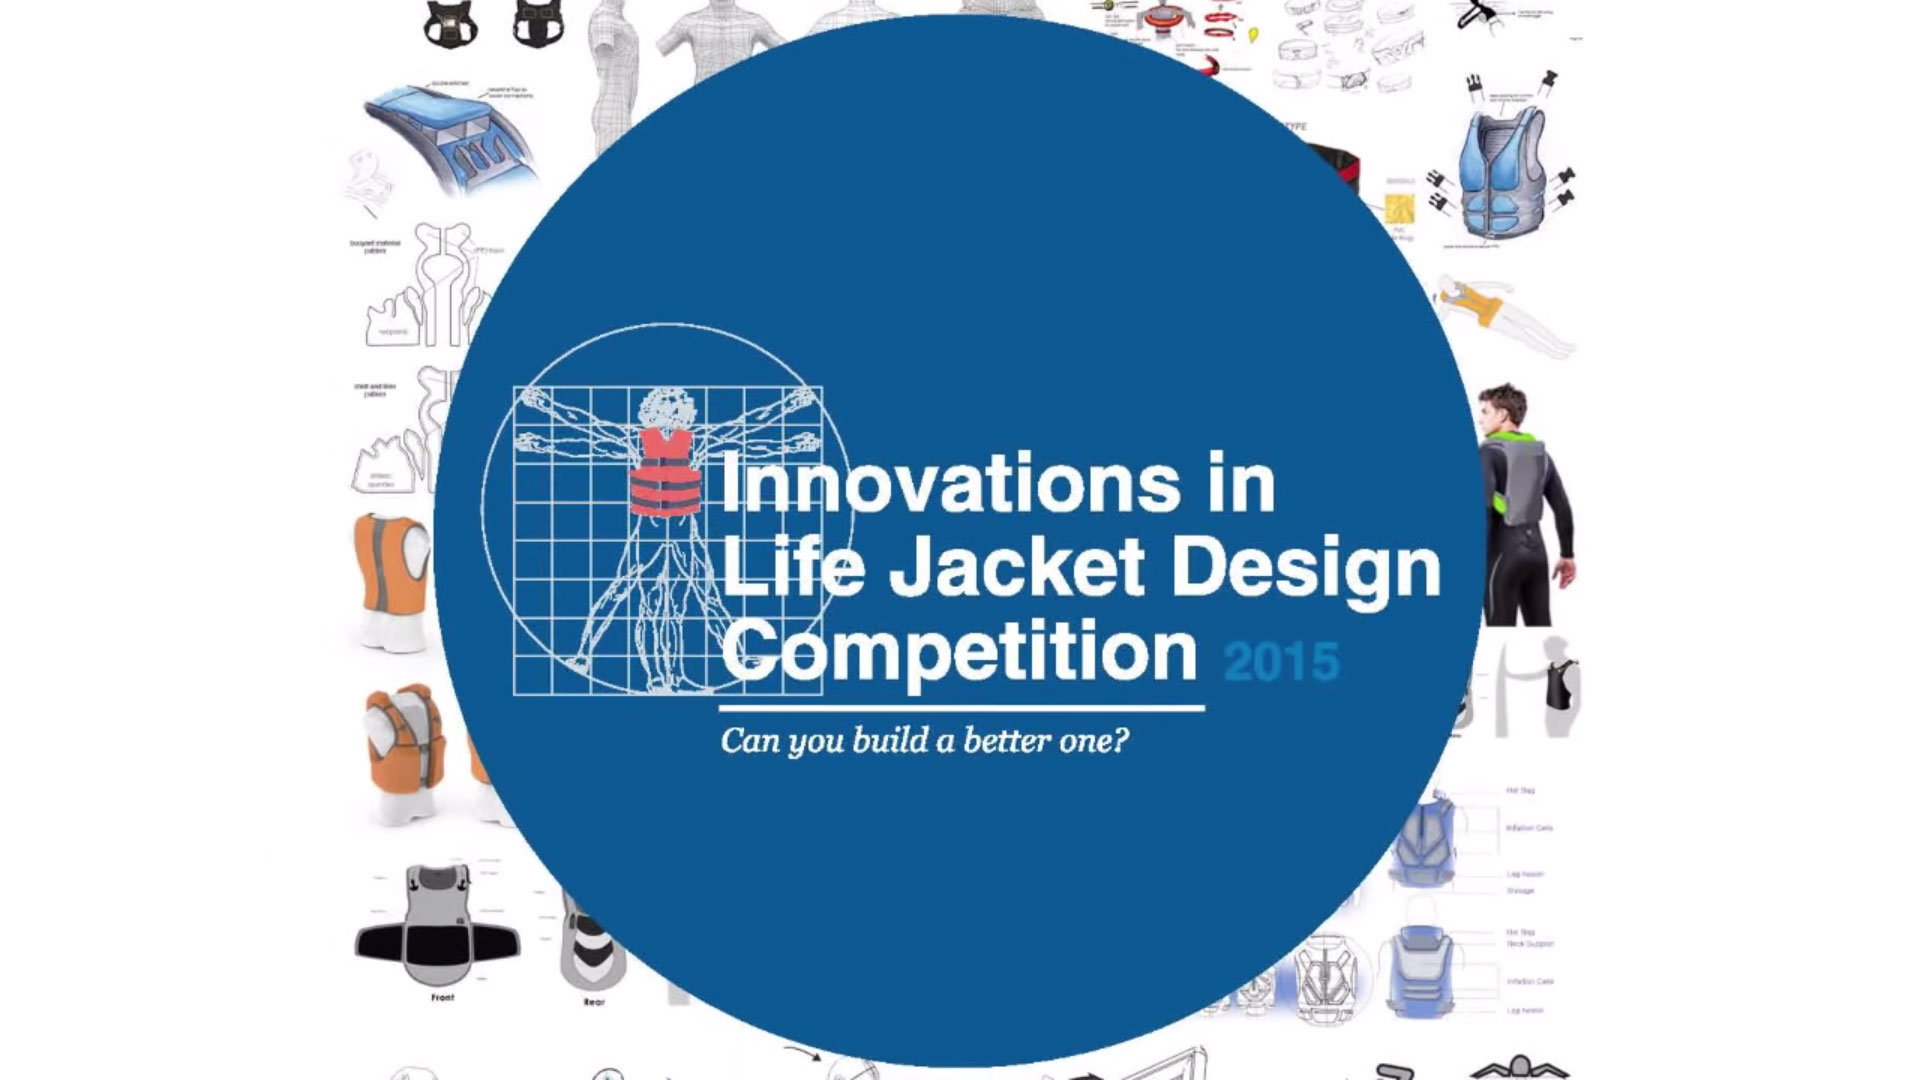 Life Jacket Design Competition Winners